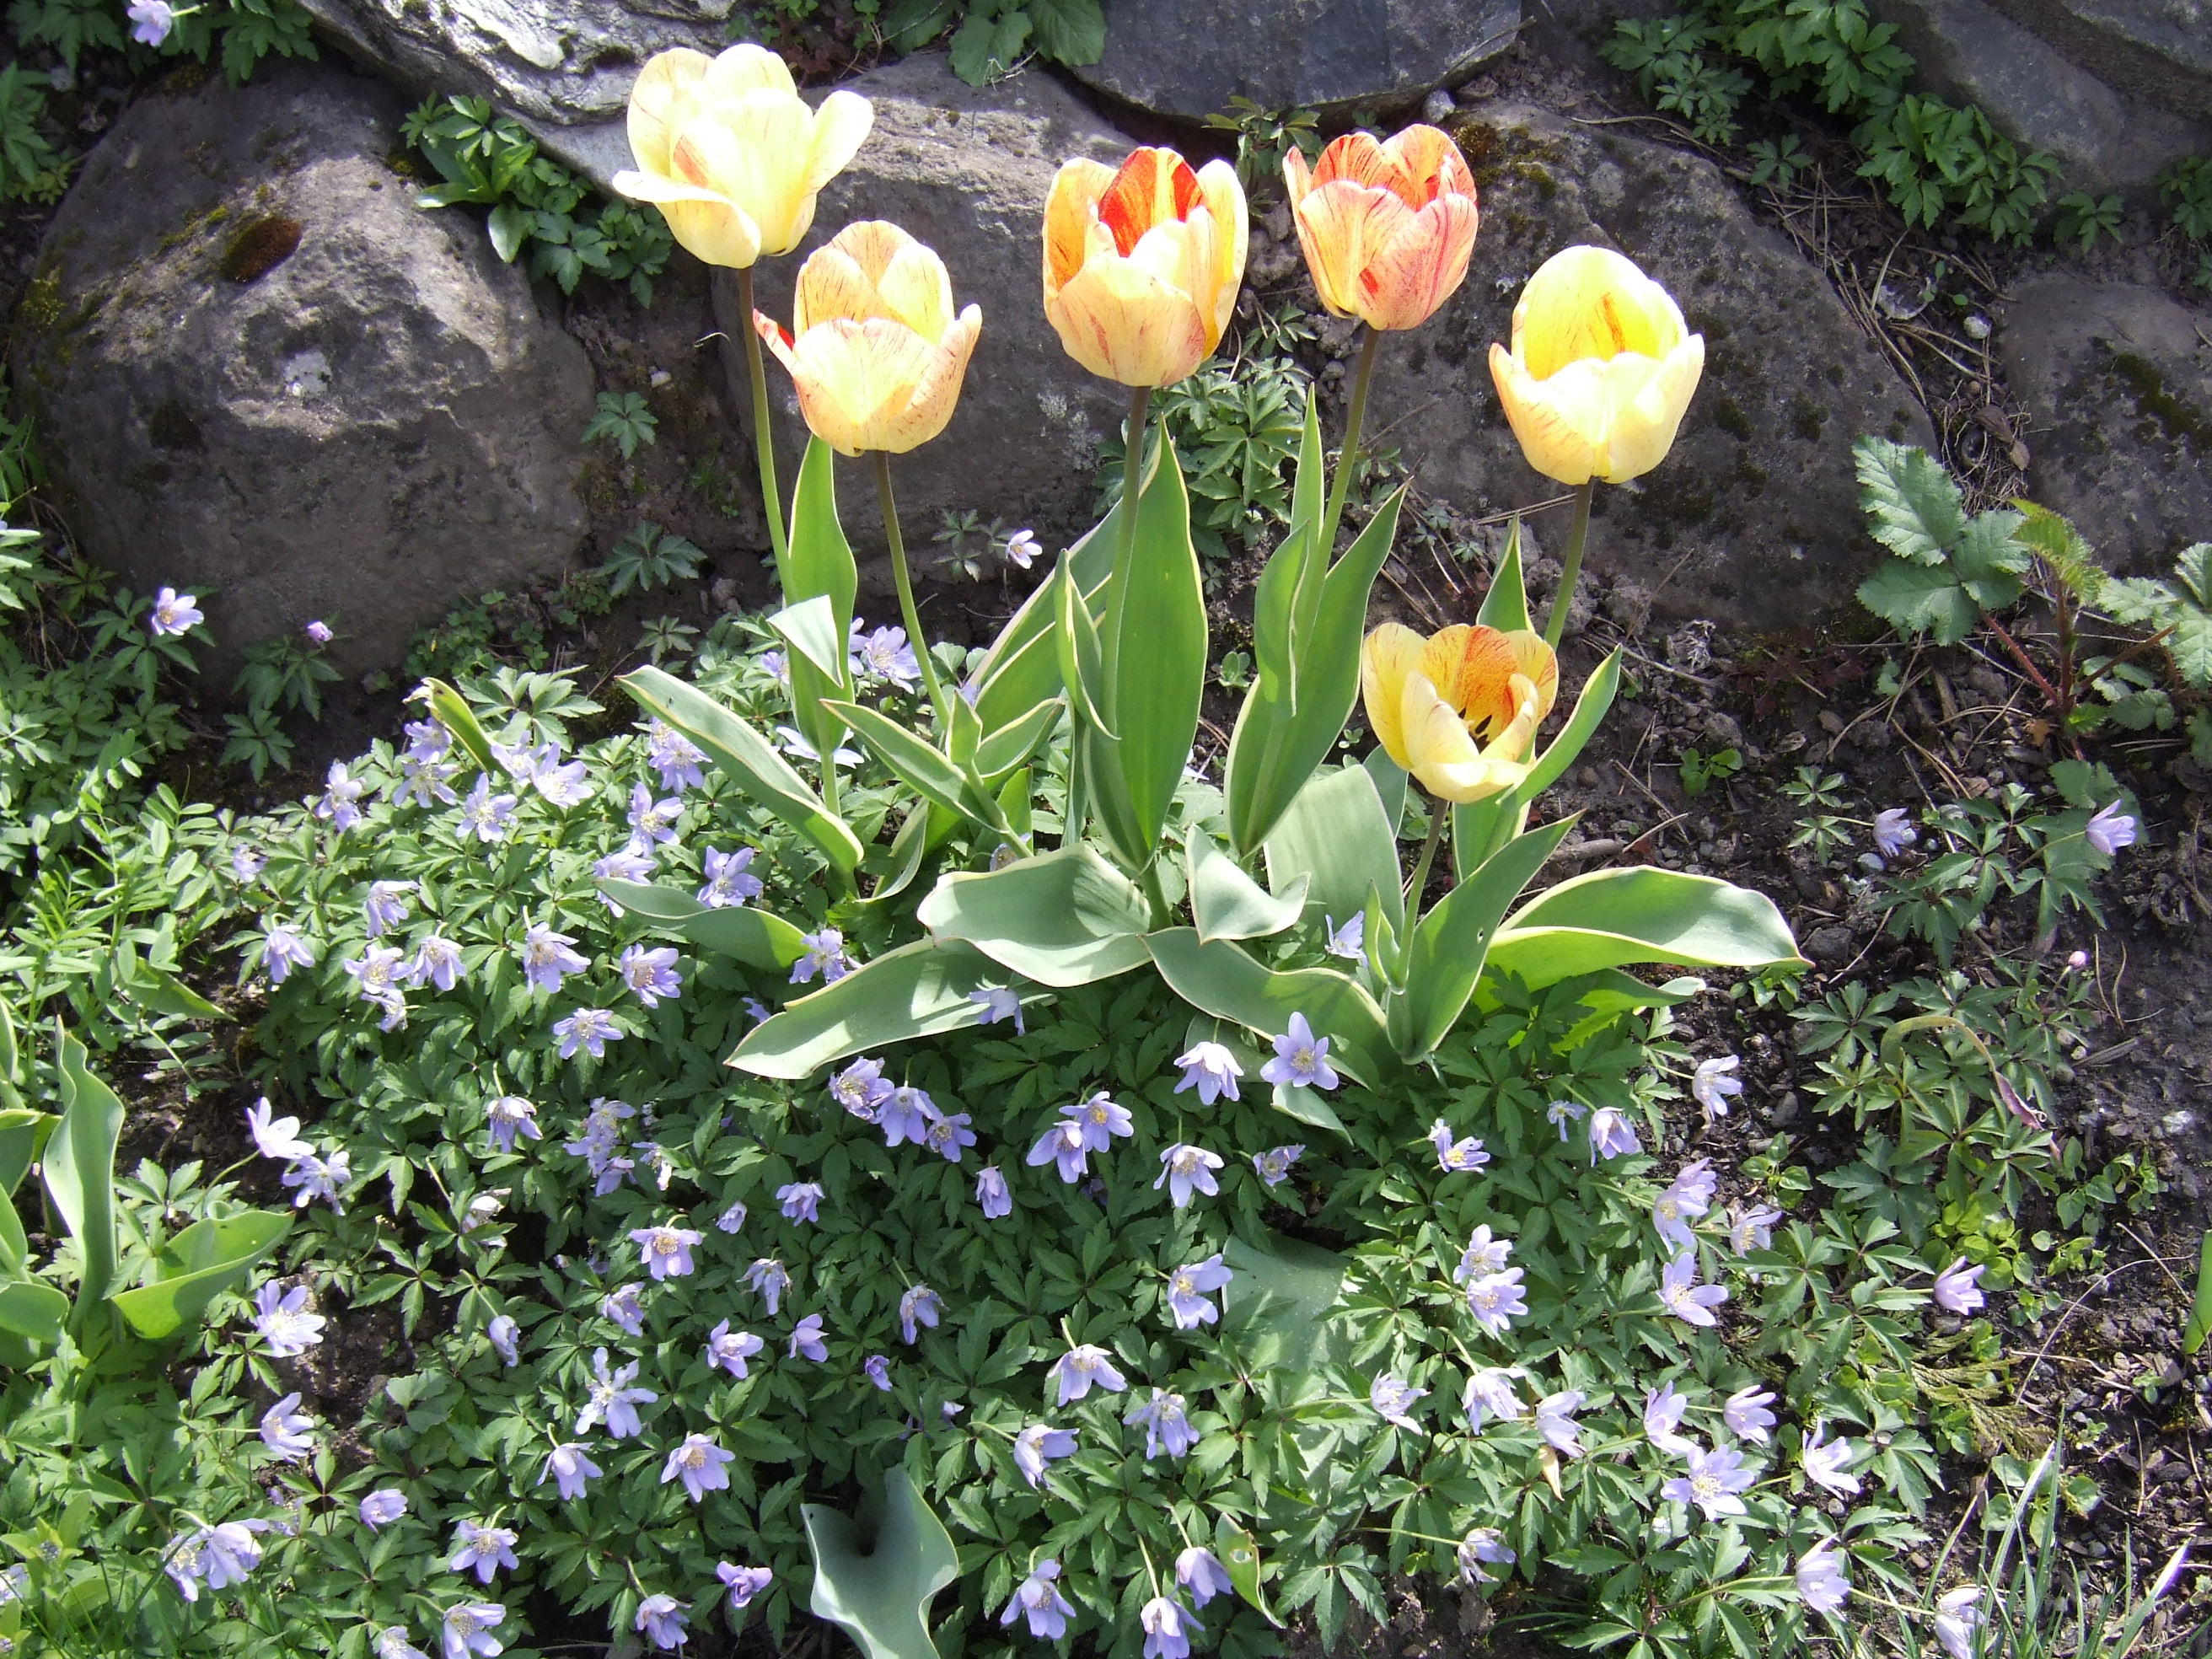 Anenome blanda and tulips